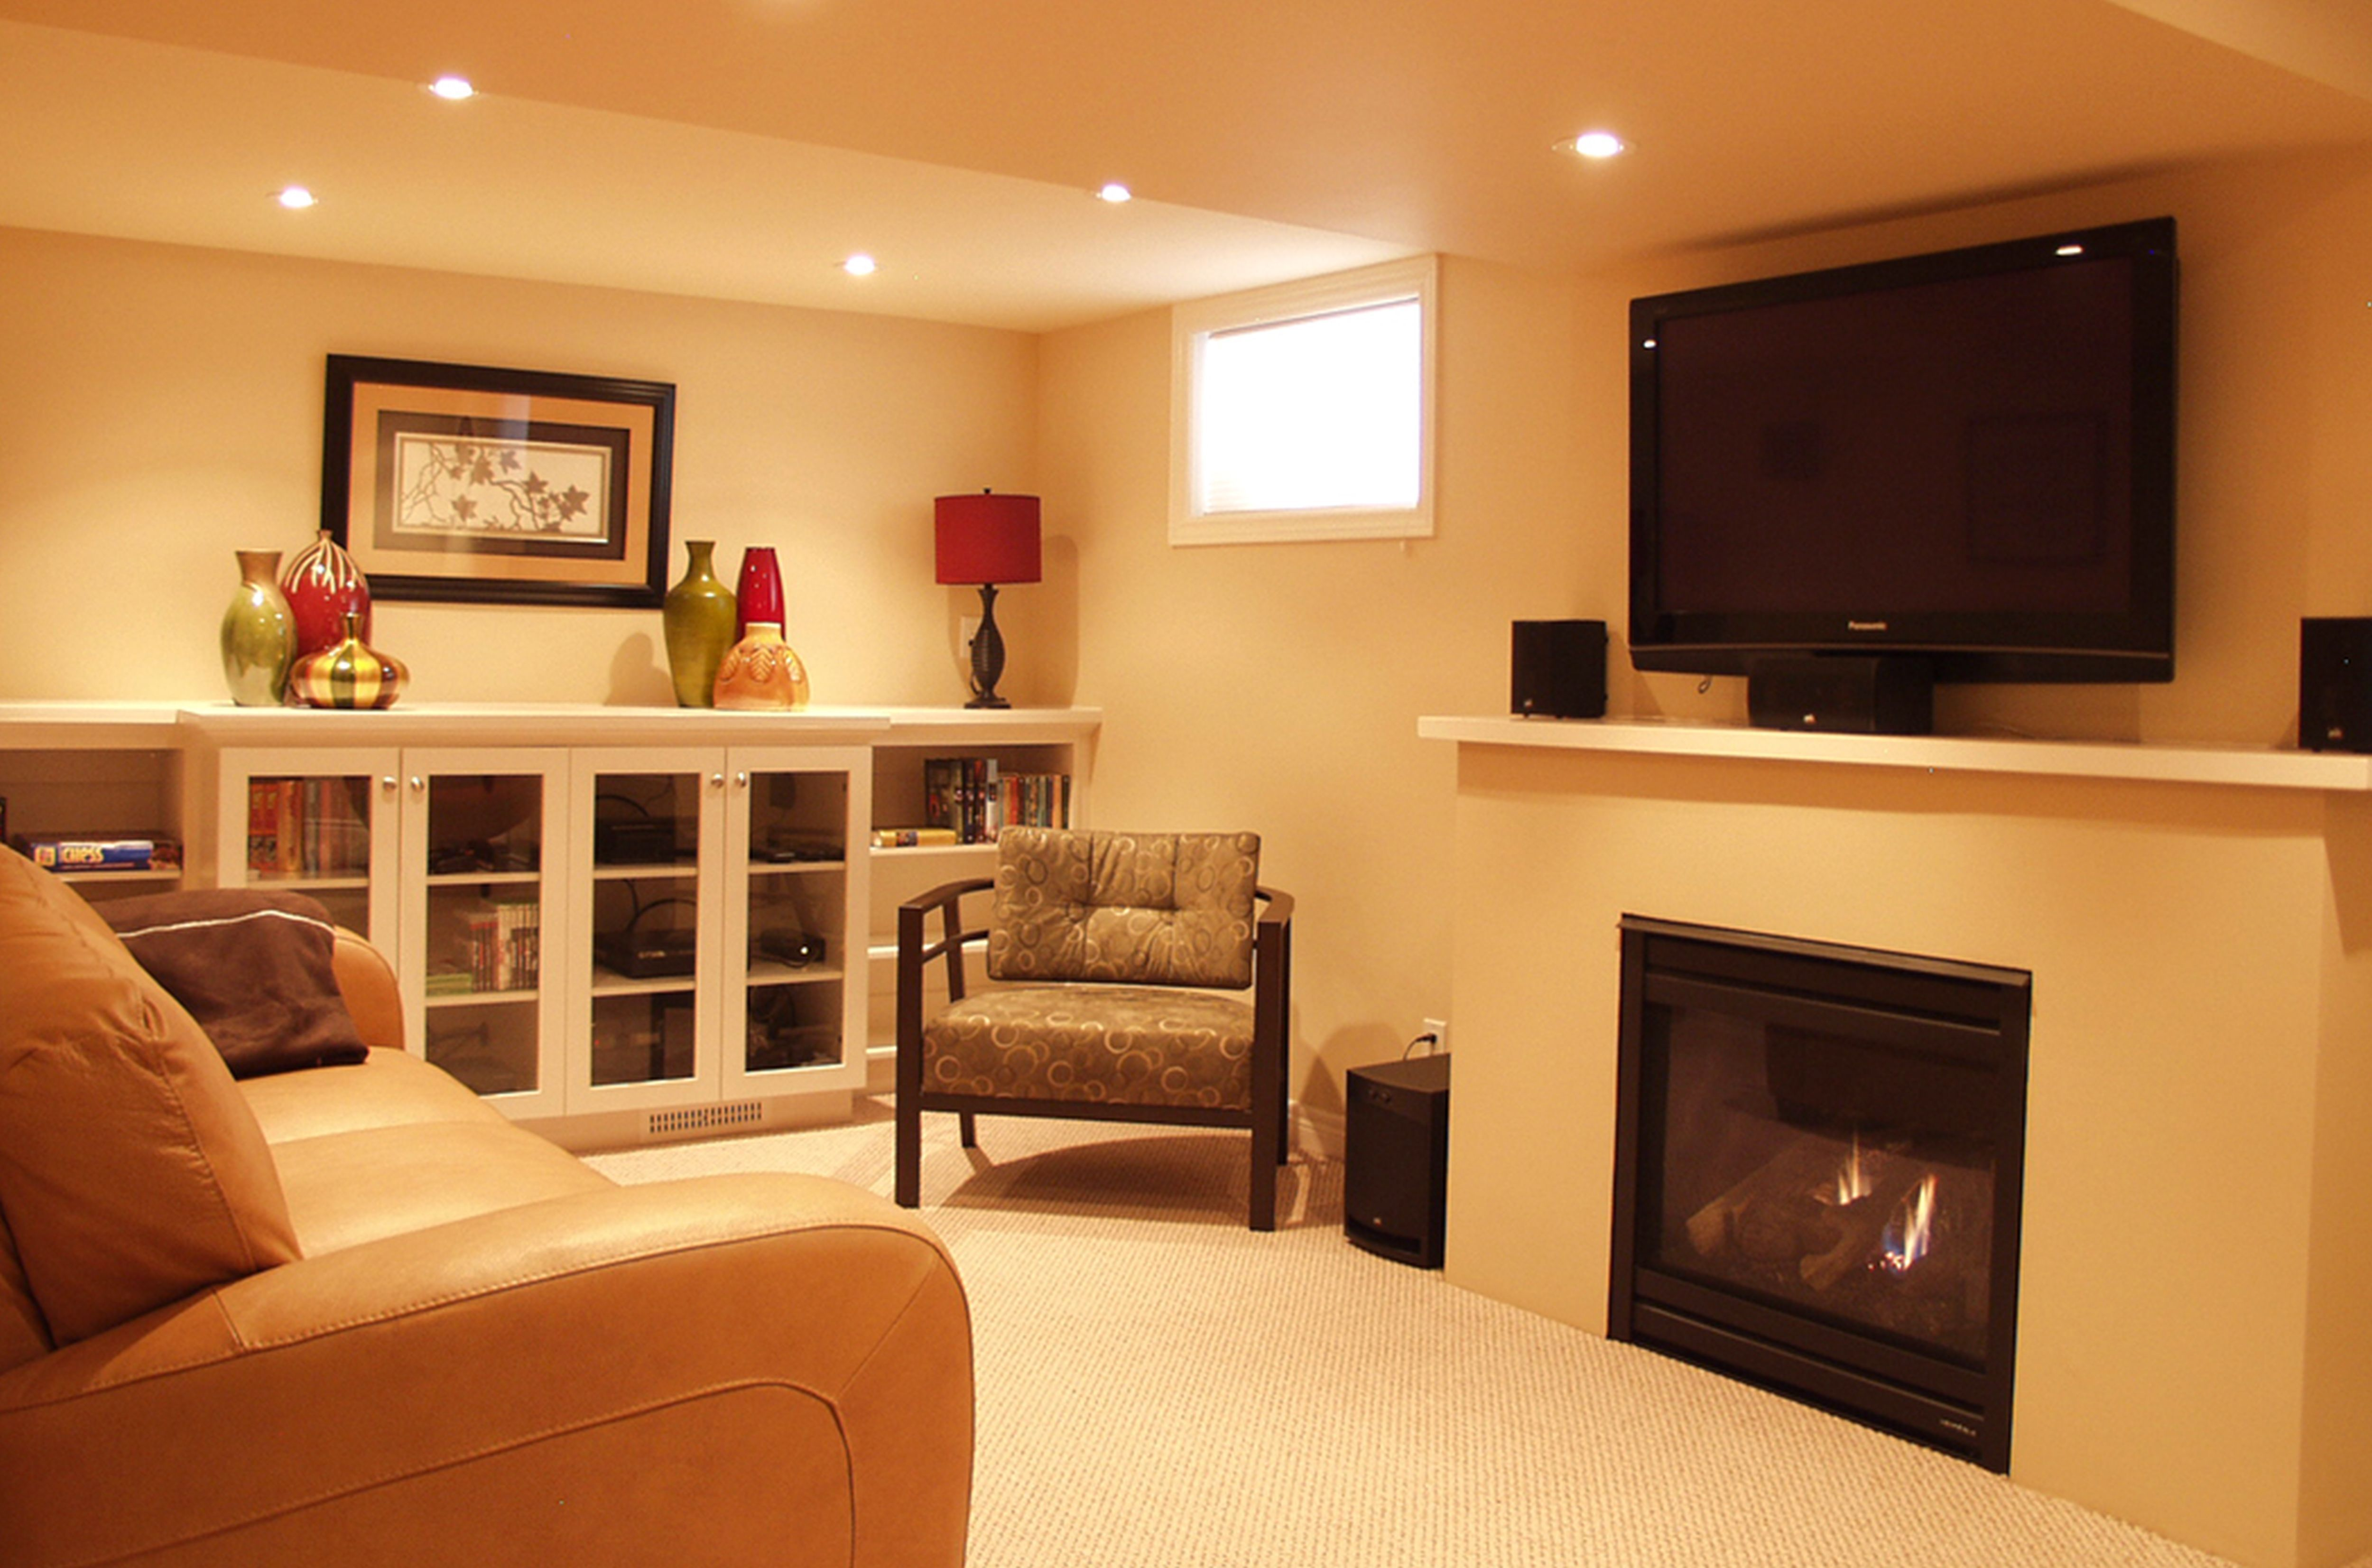 copper room design ideas  Warm Wall Colors Creating A Serene Basement Family Room Design Ideas